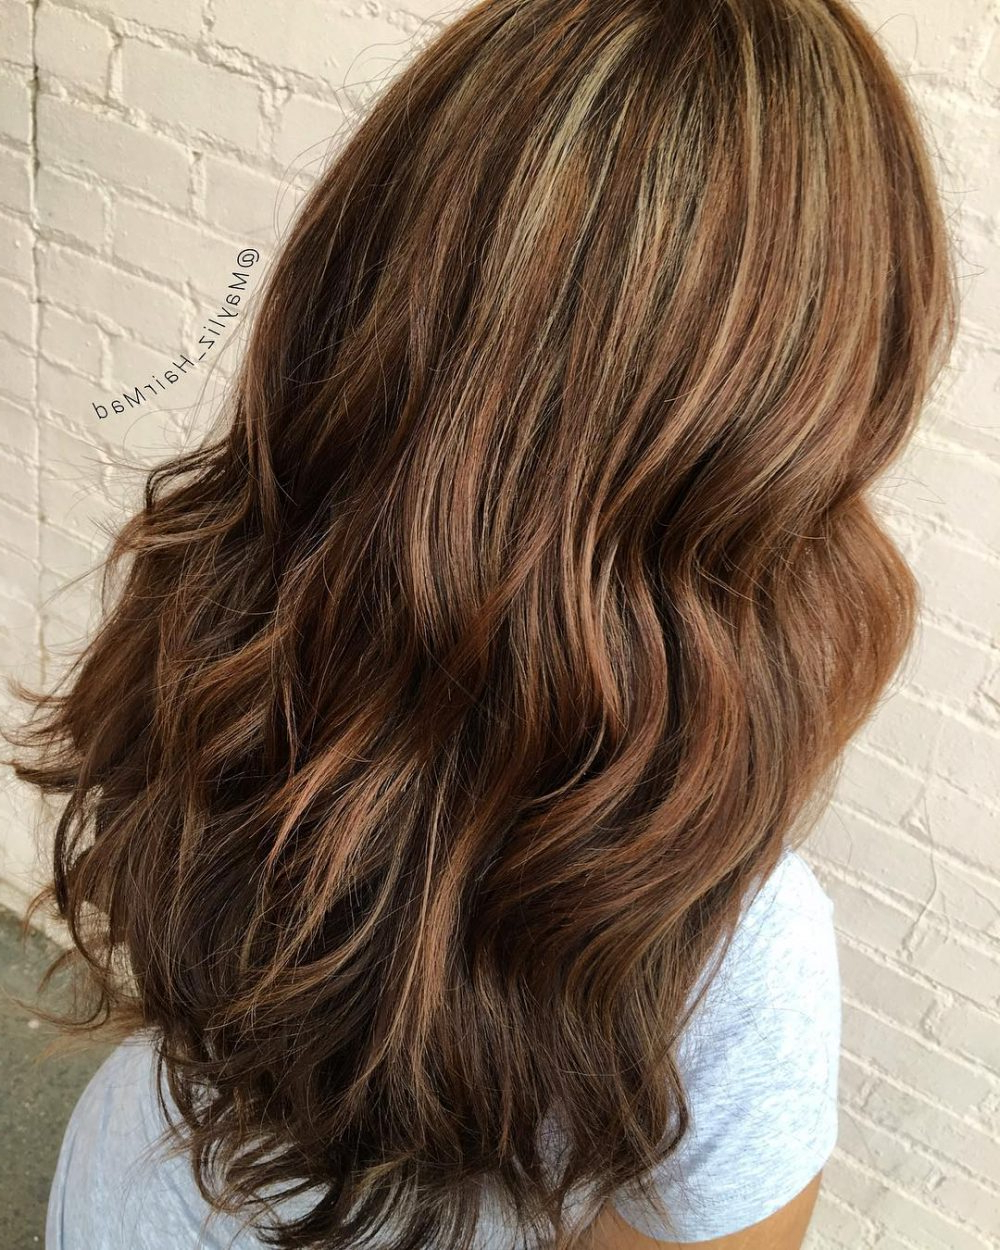 35 Most Delectable Caramel Highlights You'll See In 2019 Throughout Most Recent Voluminous Long Caramel Hairstyles (View 3 of 20)